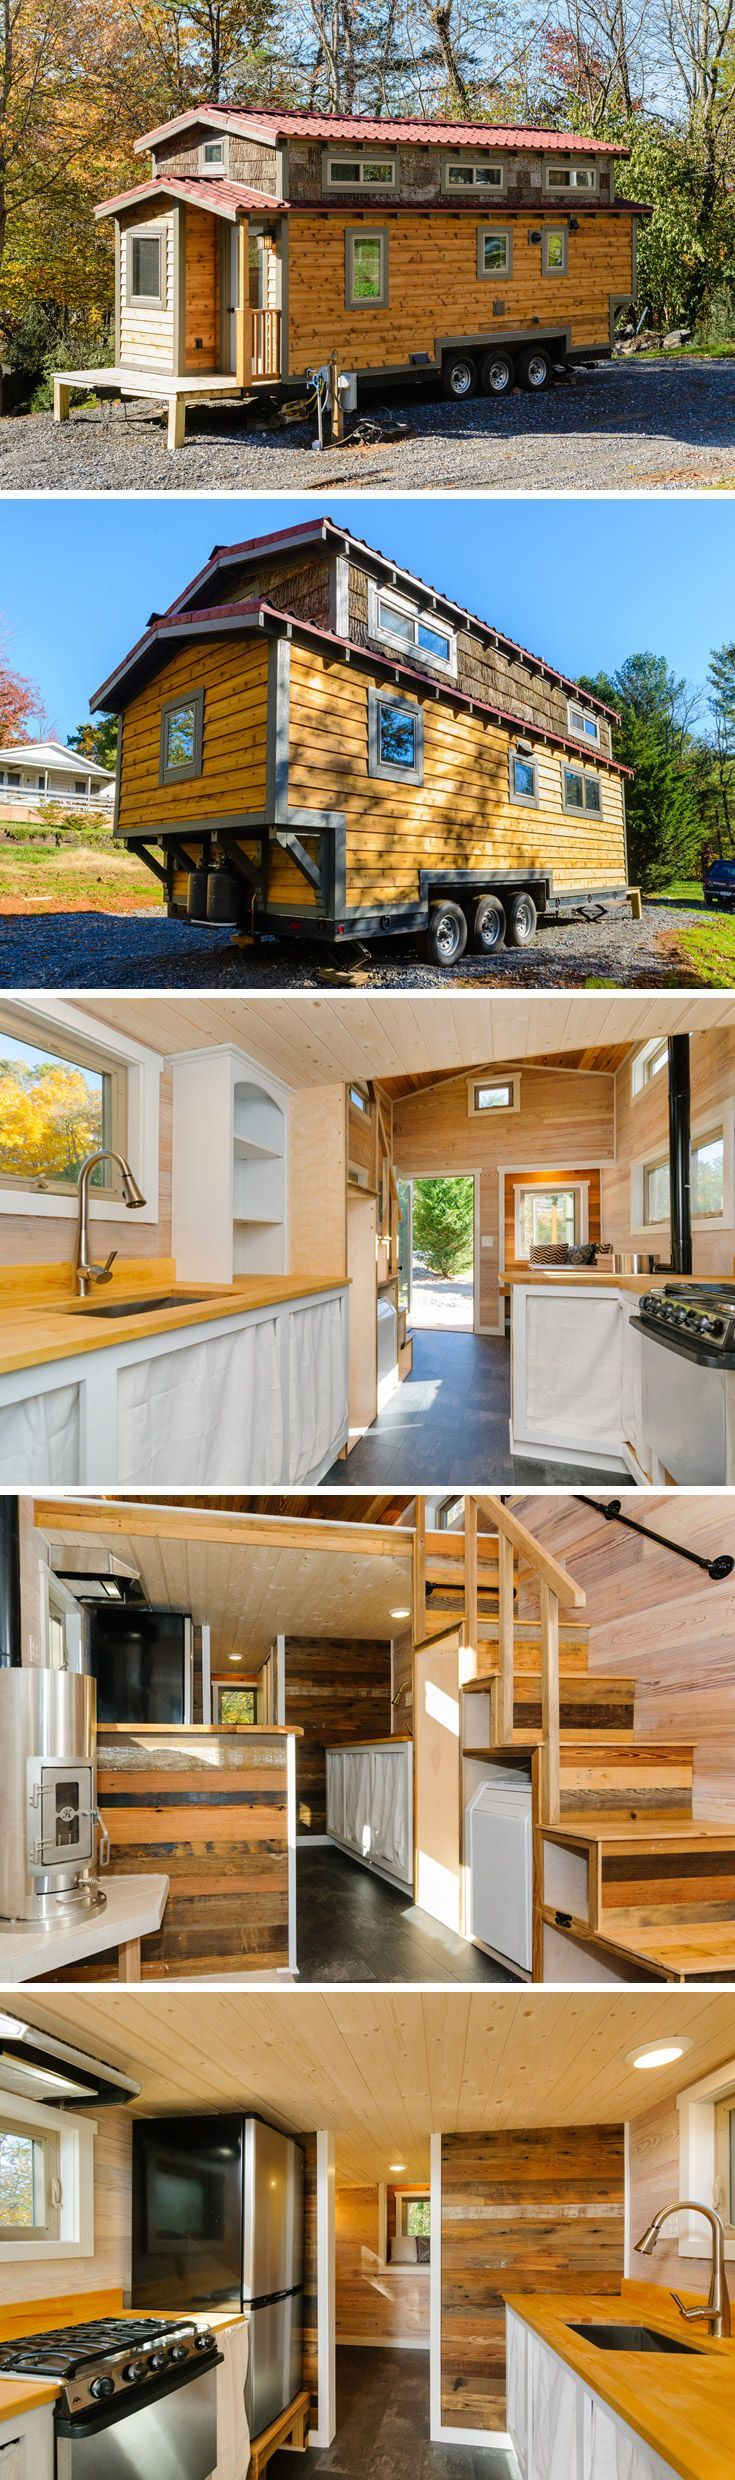 cool Tiny house with an eye-catching exterior consisting of cedar and poplar, and the... by http://www.danazhome-decorations.xyz/tiny-homes/tiny-house-with-an-eye-catching-exterior-consisting-of-cedar-and-poplar-and-the/